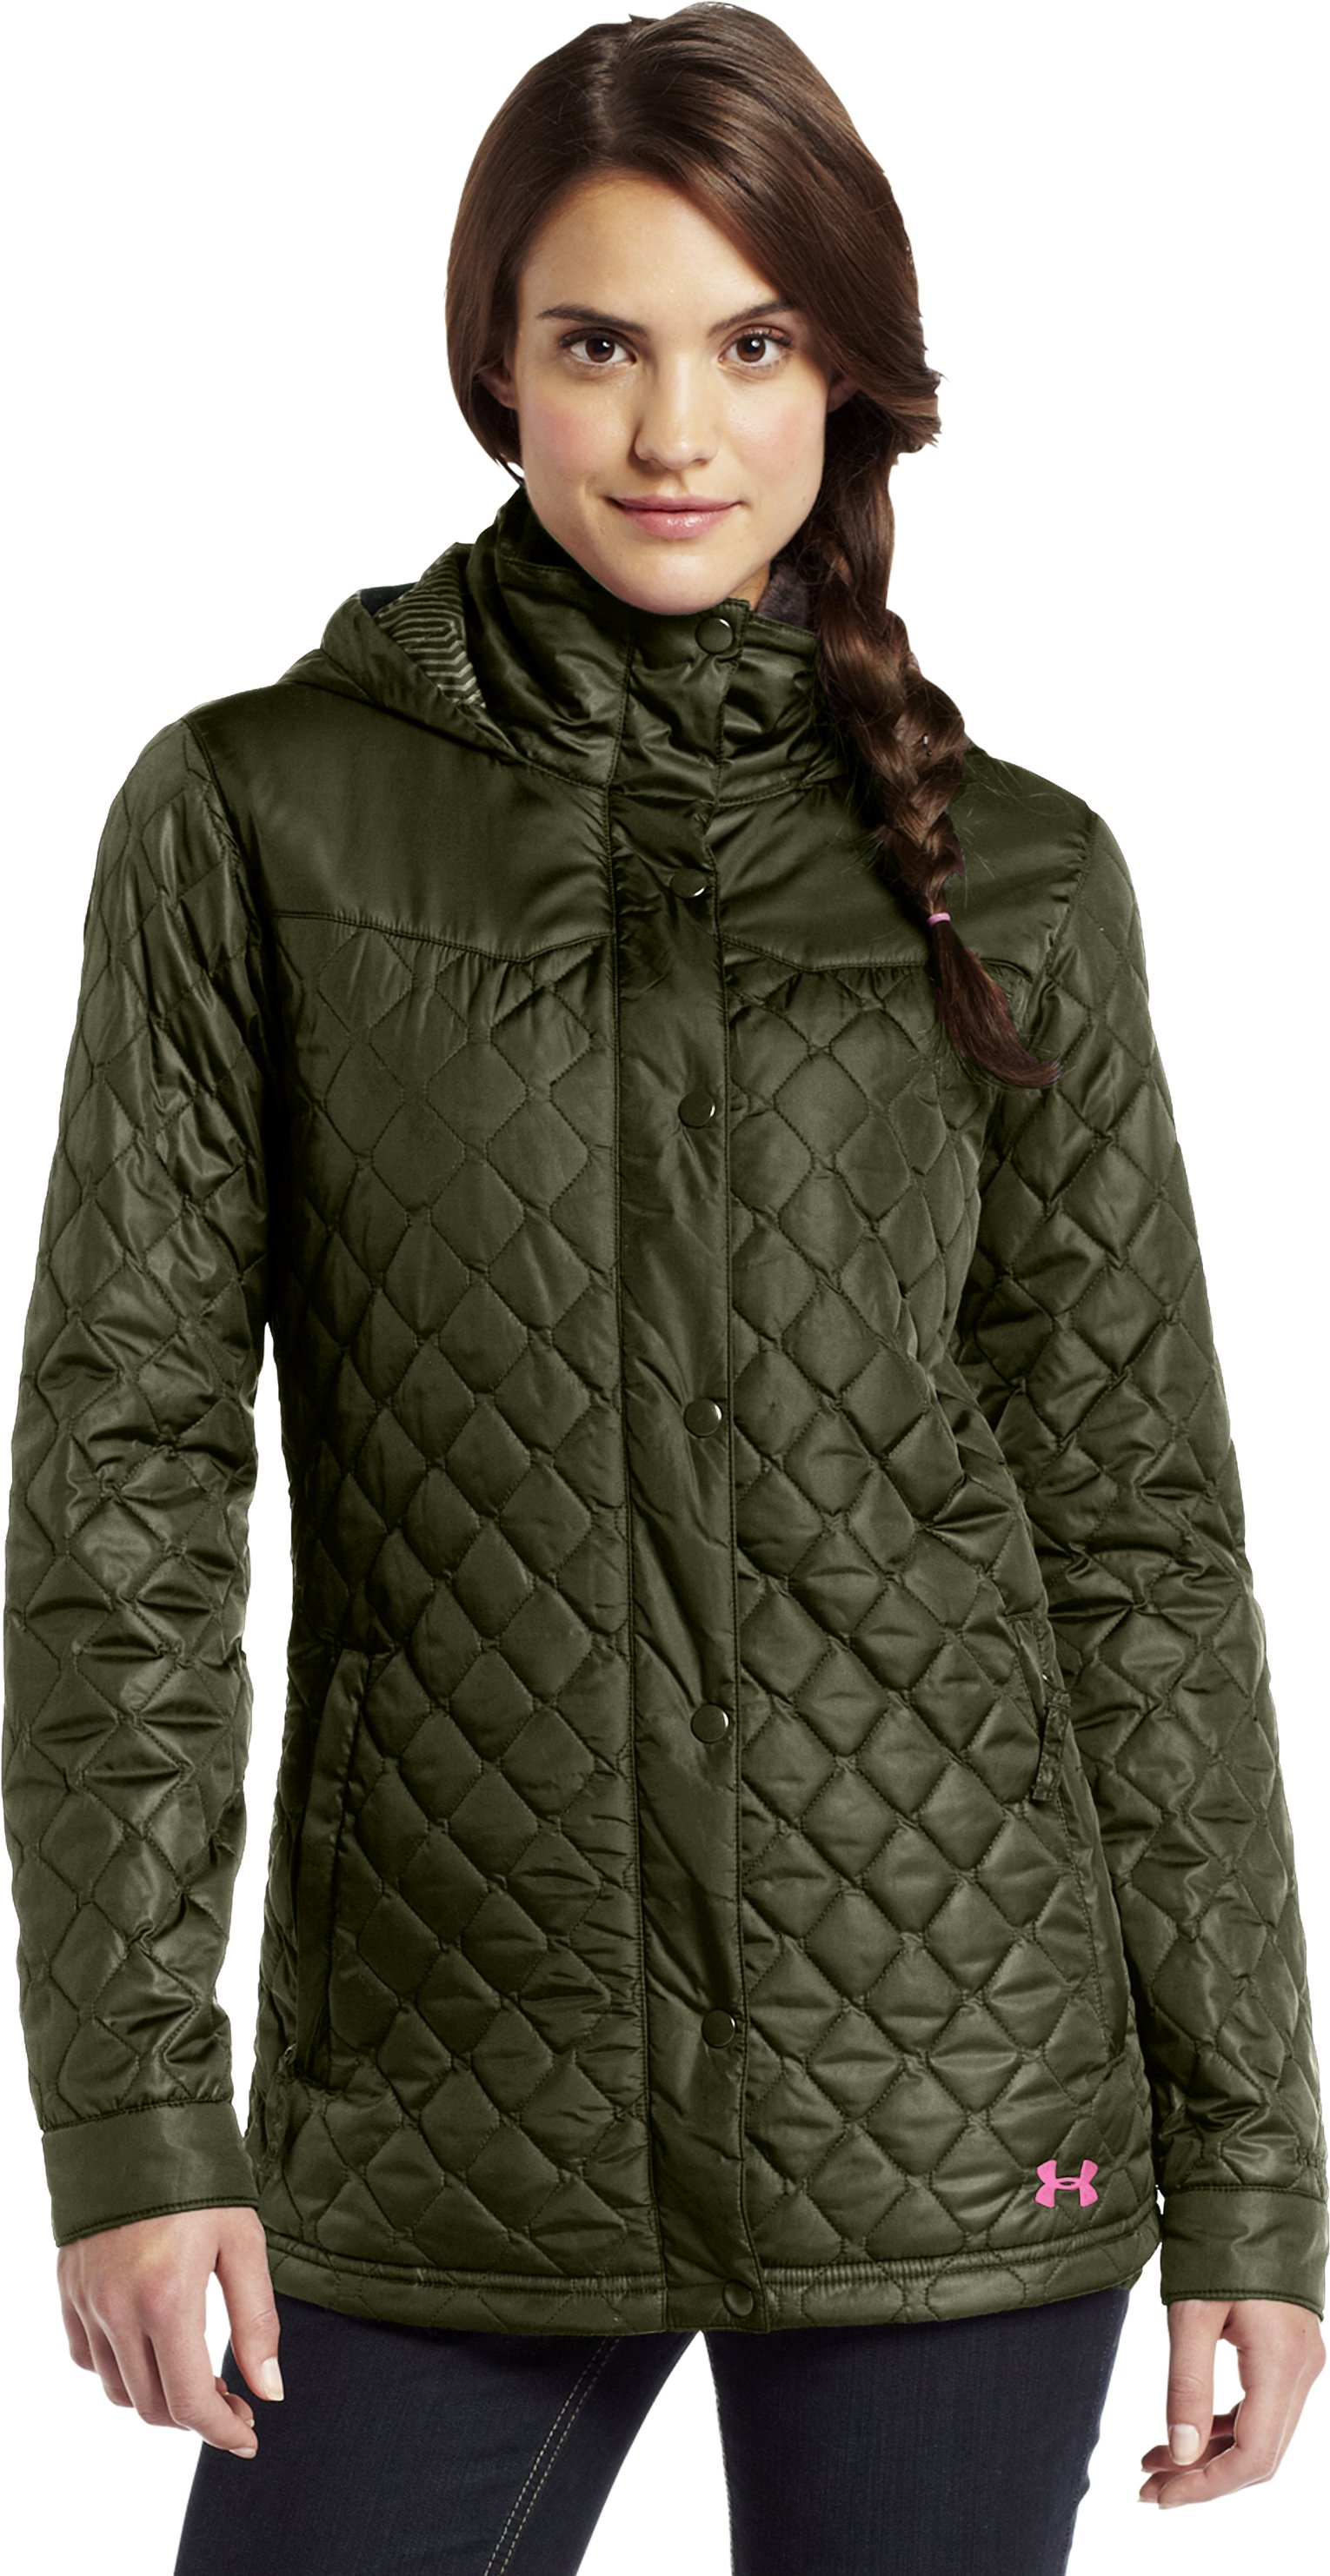 Women's ColdGear® Infrared Alpinlite Parka, GREENHEAD, zoomed image